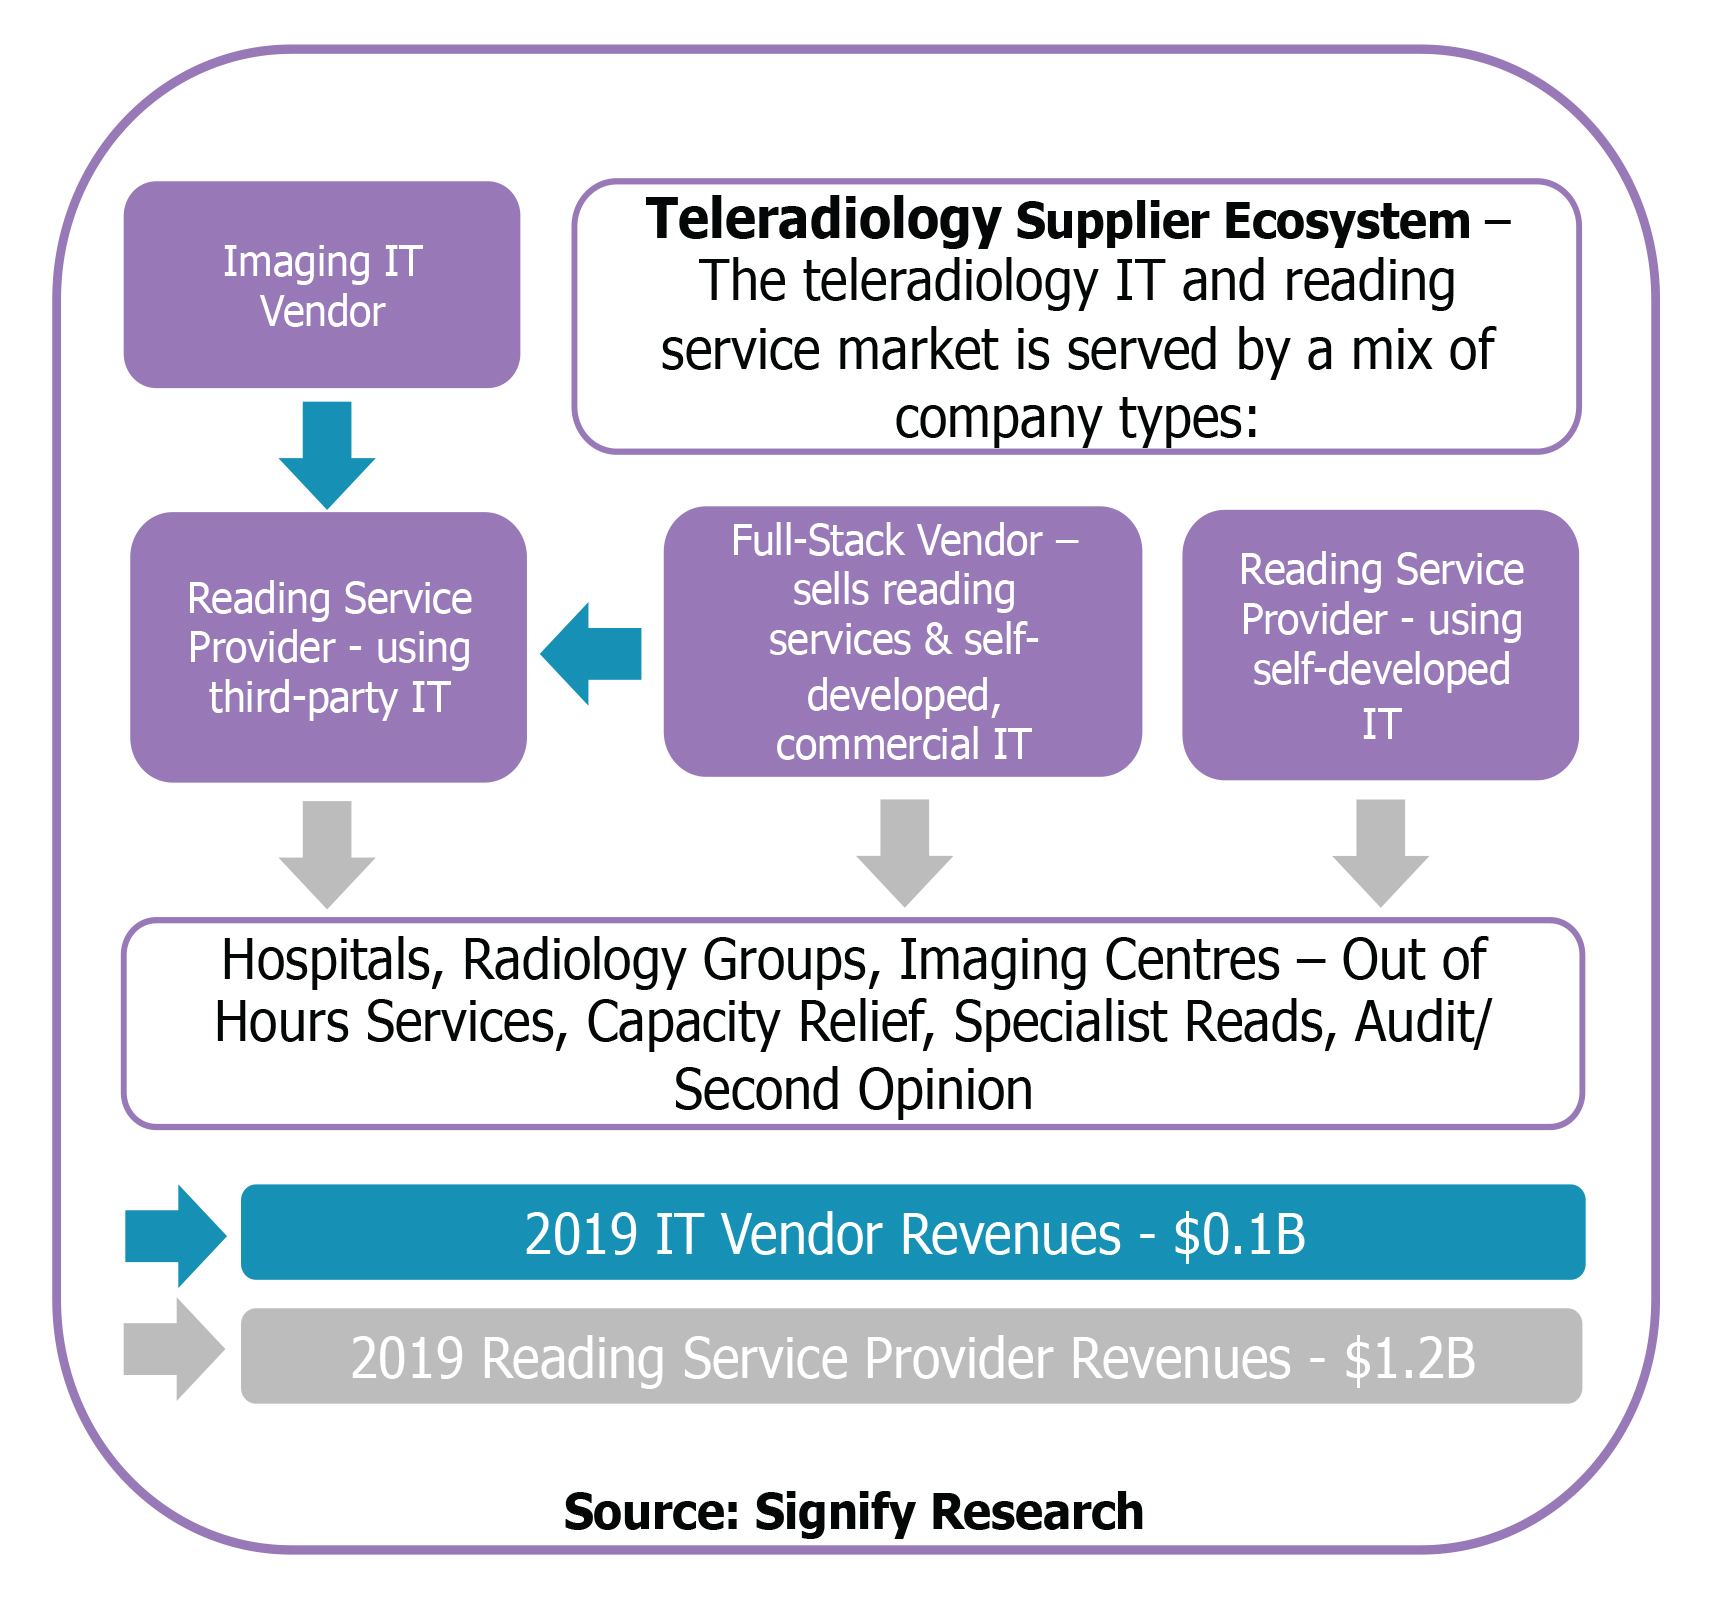 Figure 1. The mix of company types falling into teleradiology reading services and teleradiology IT components.